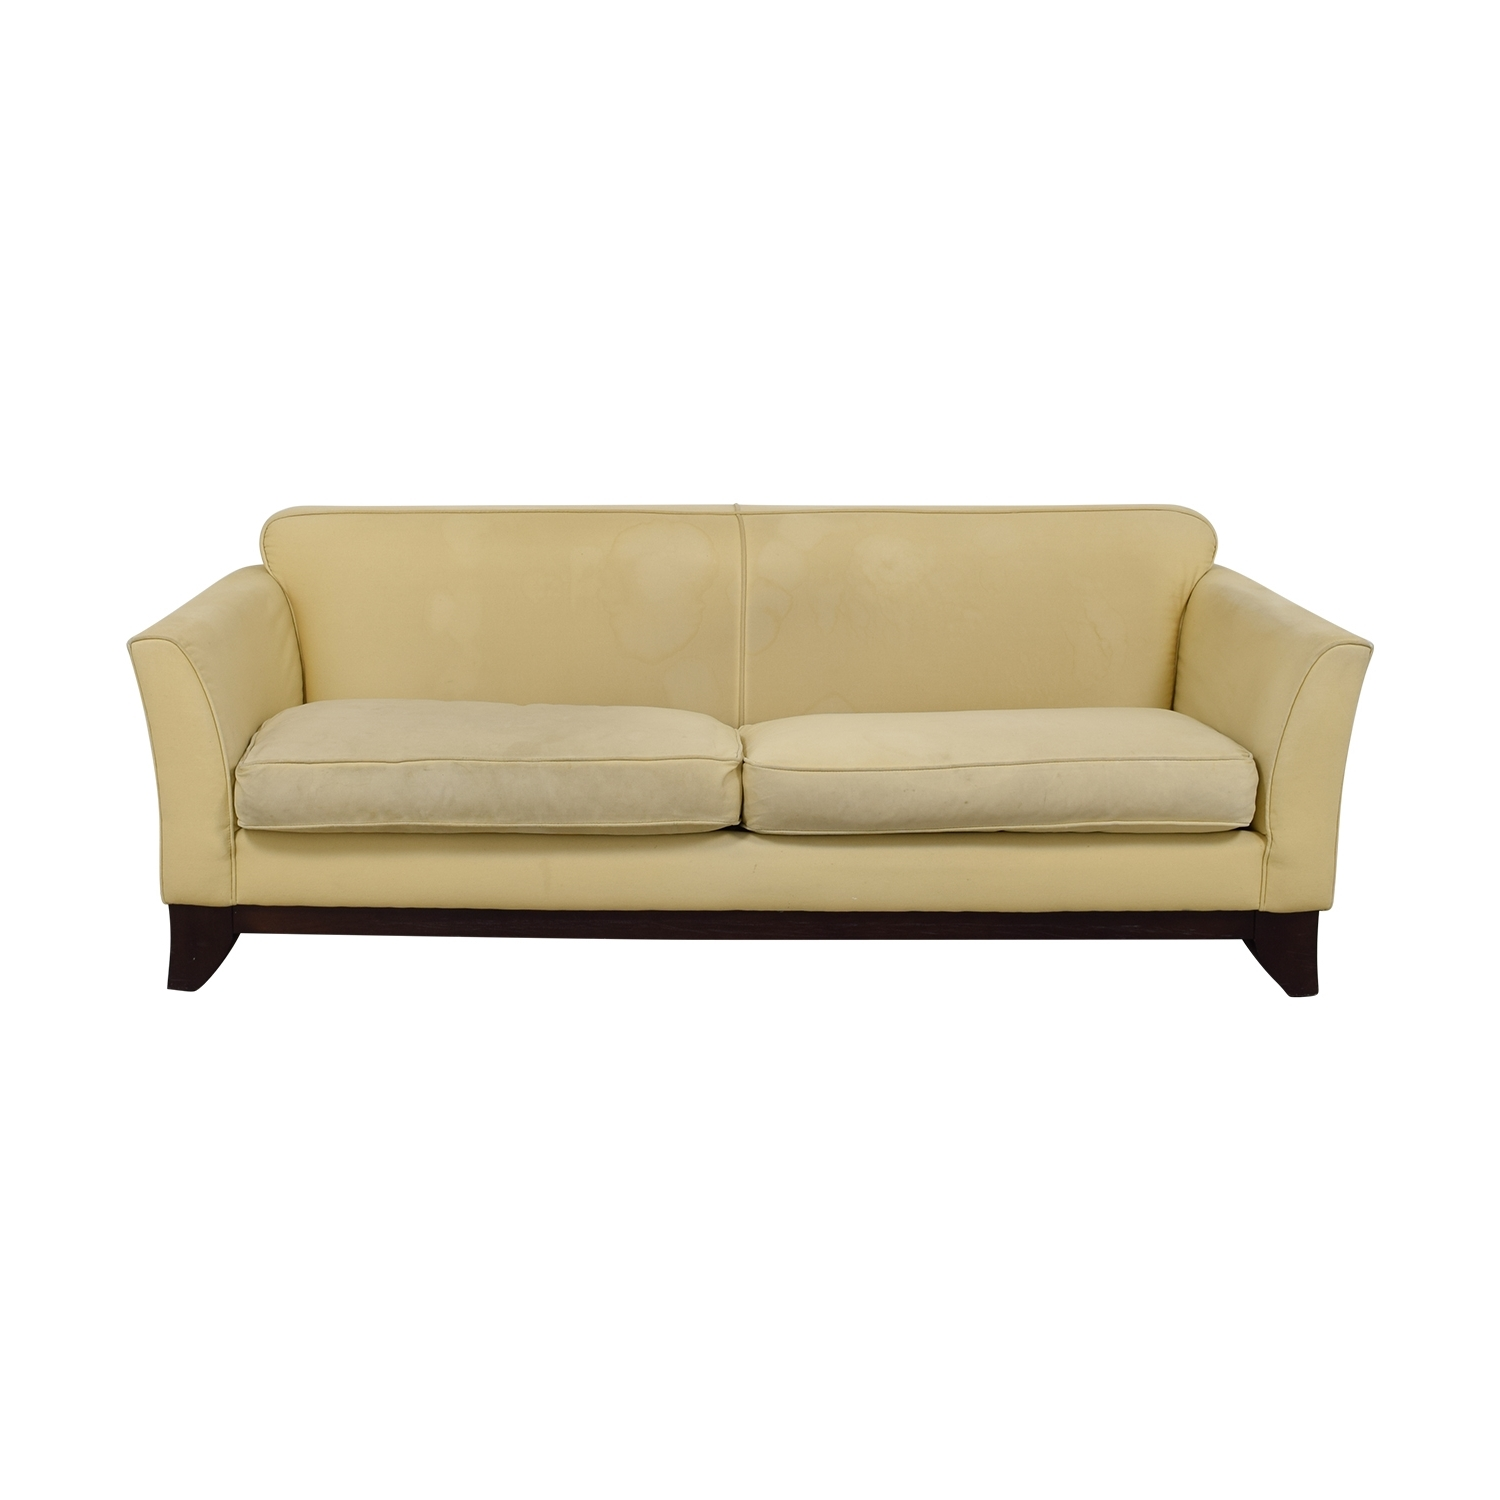 Sofas: Used Sofas For Sale Within Fashionable Yellow Chintz Sofas (View 11 of 15)